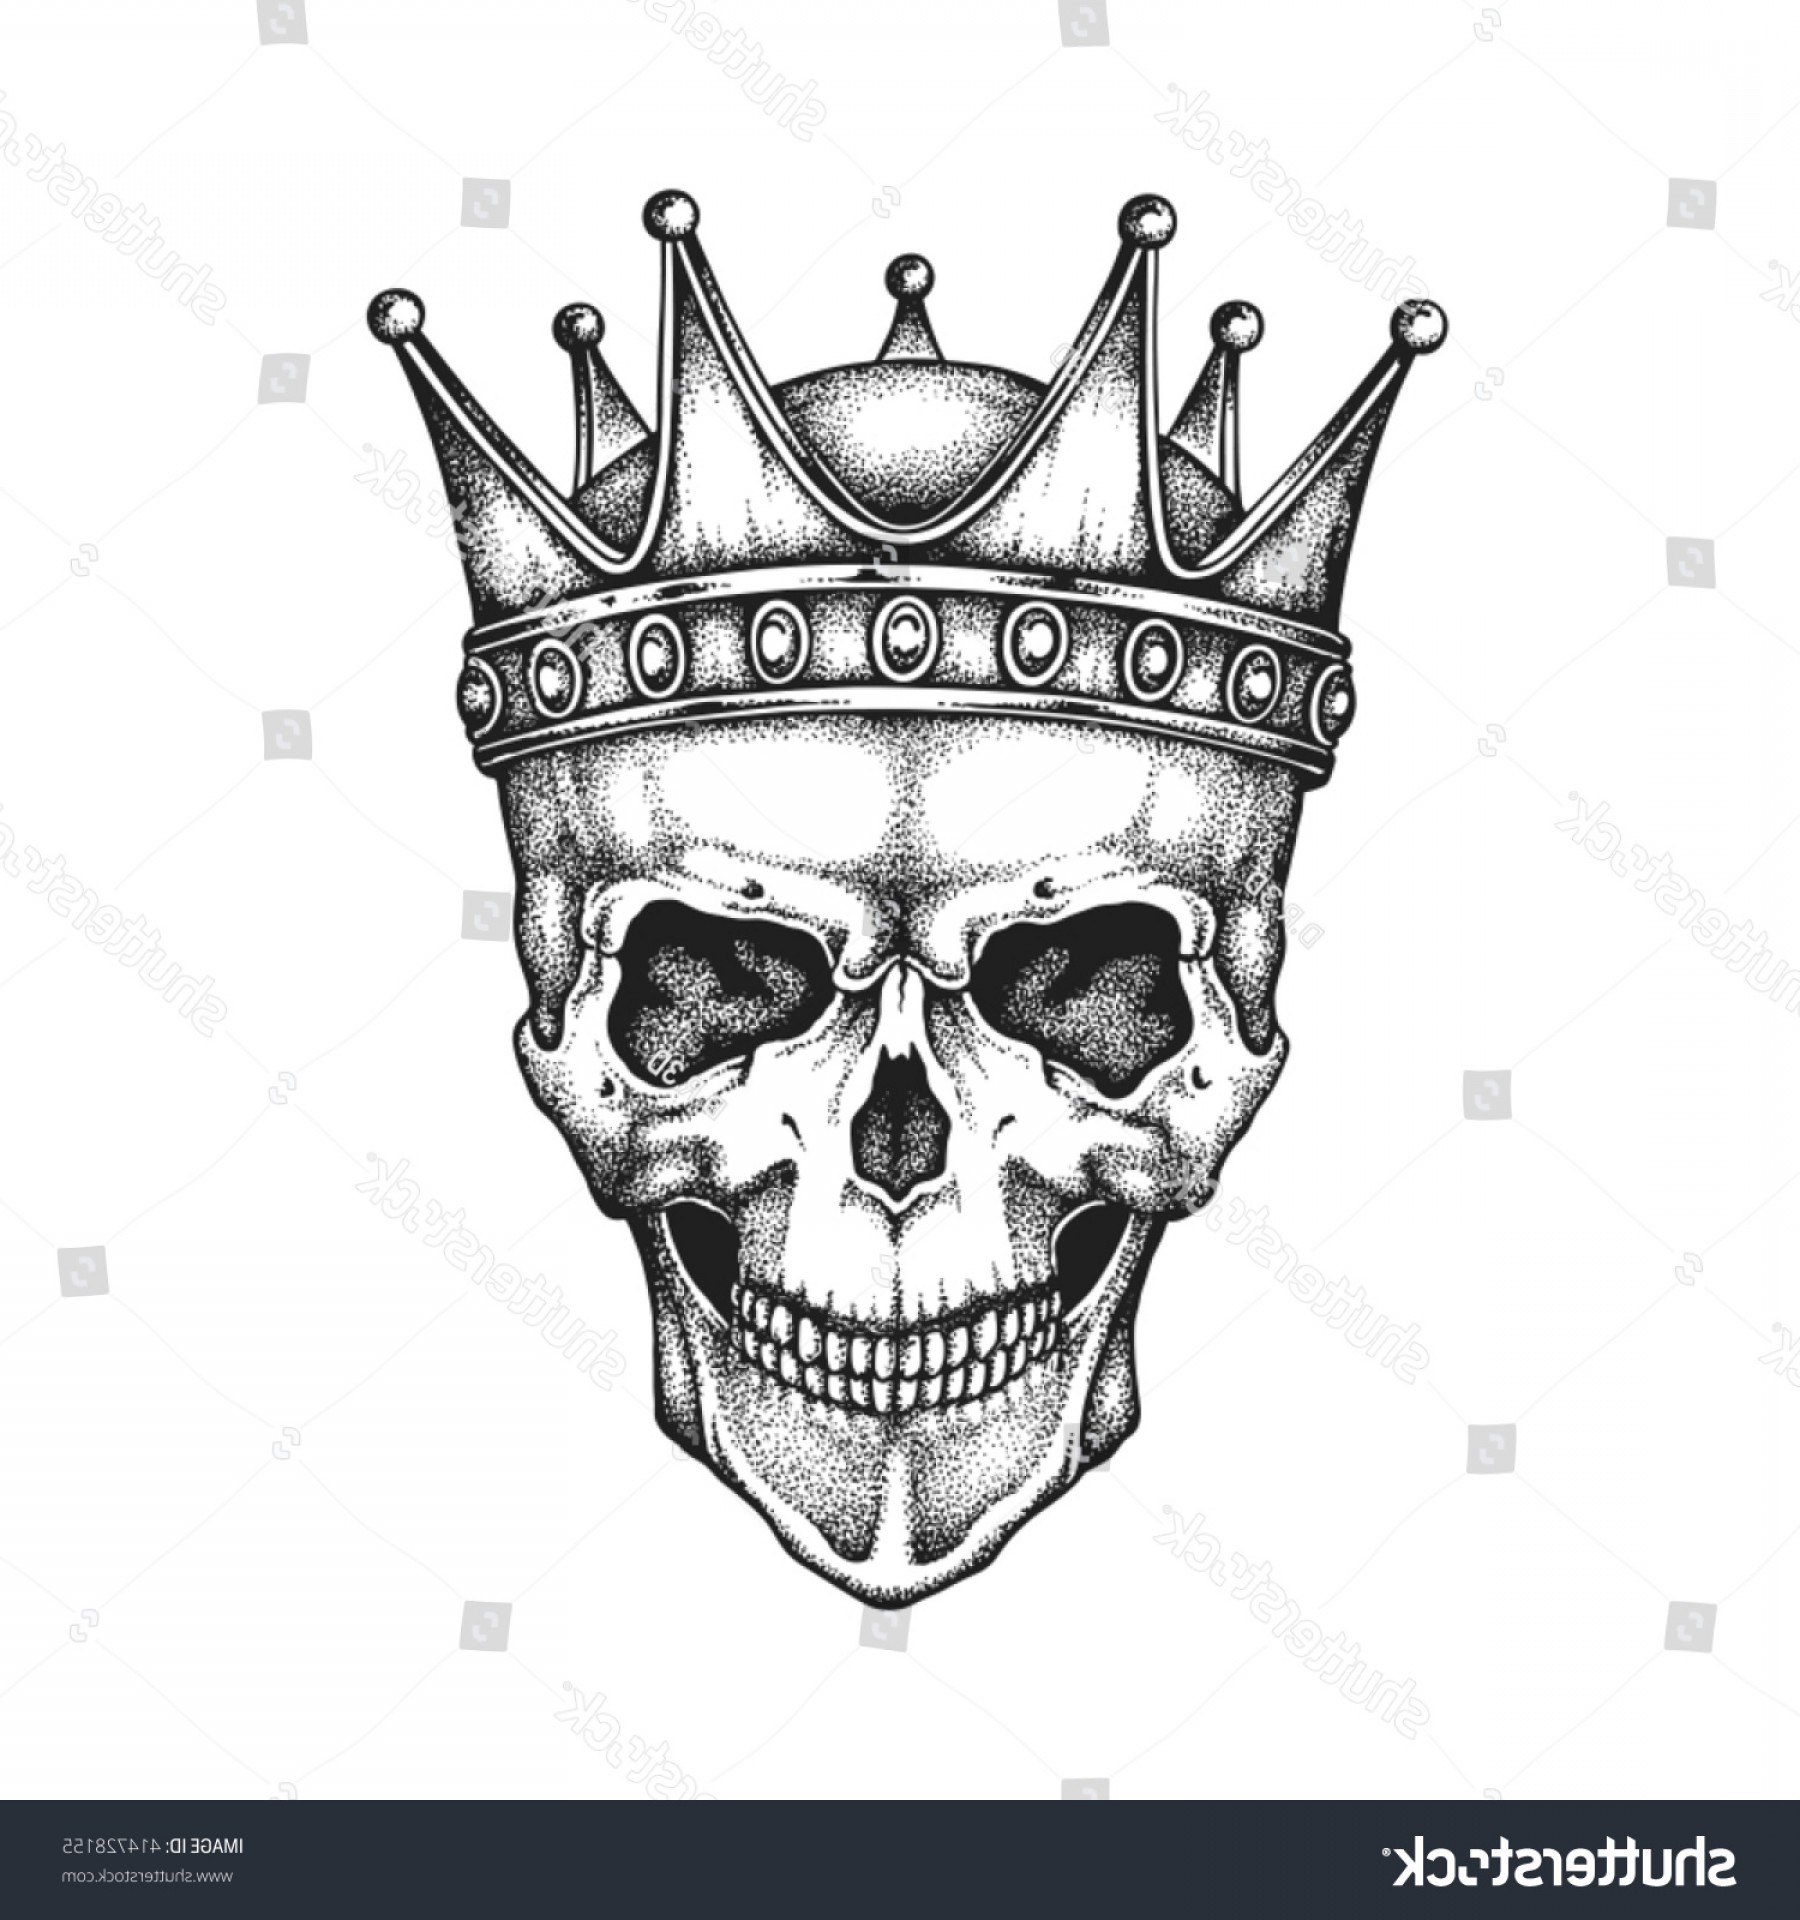 Snake Crown Vector: Hand Drawn King Skull Wearing Crown